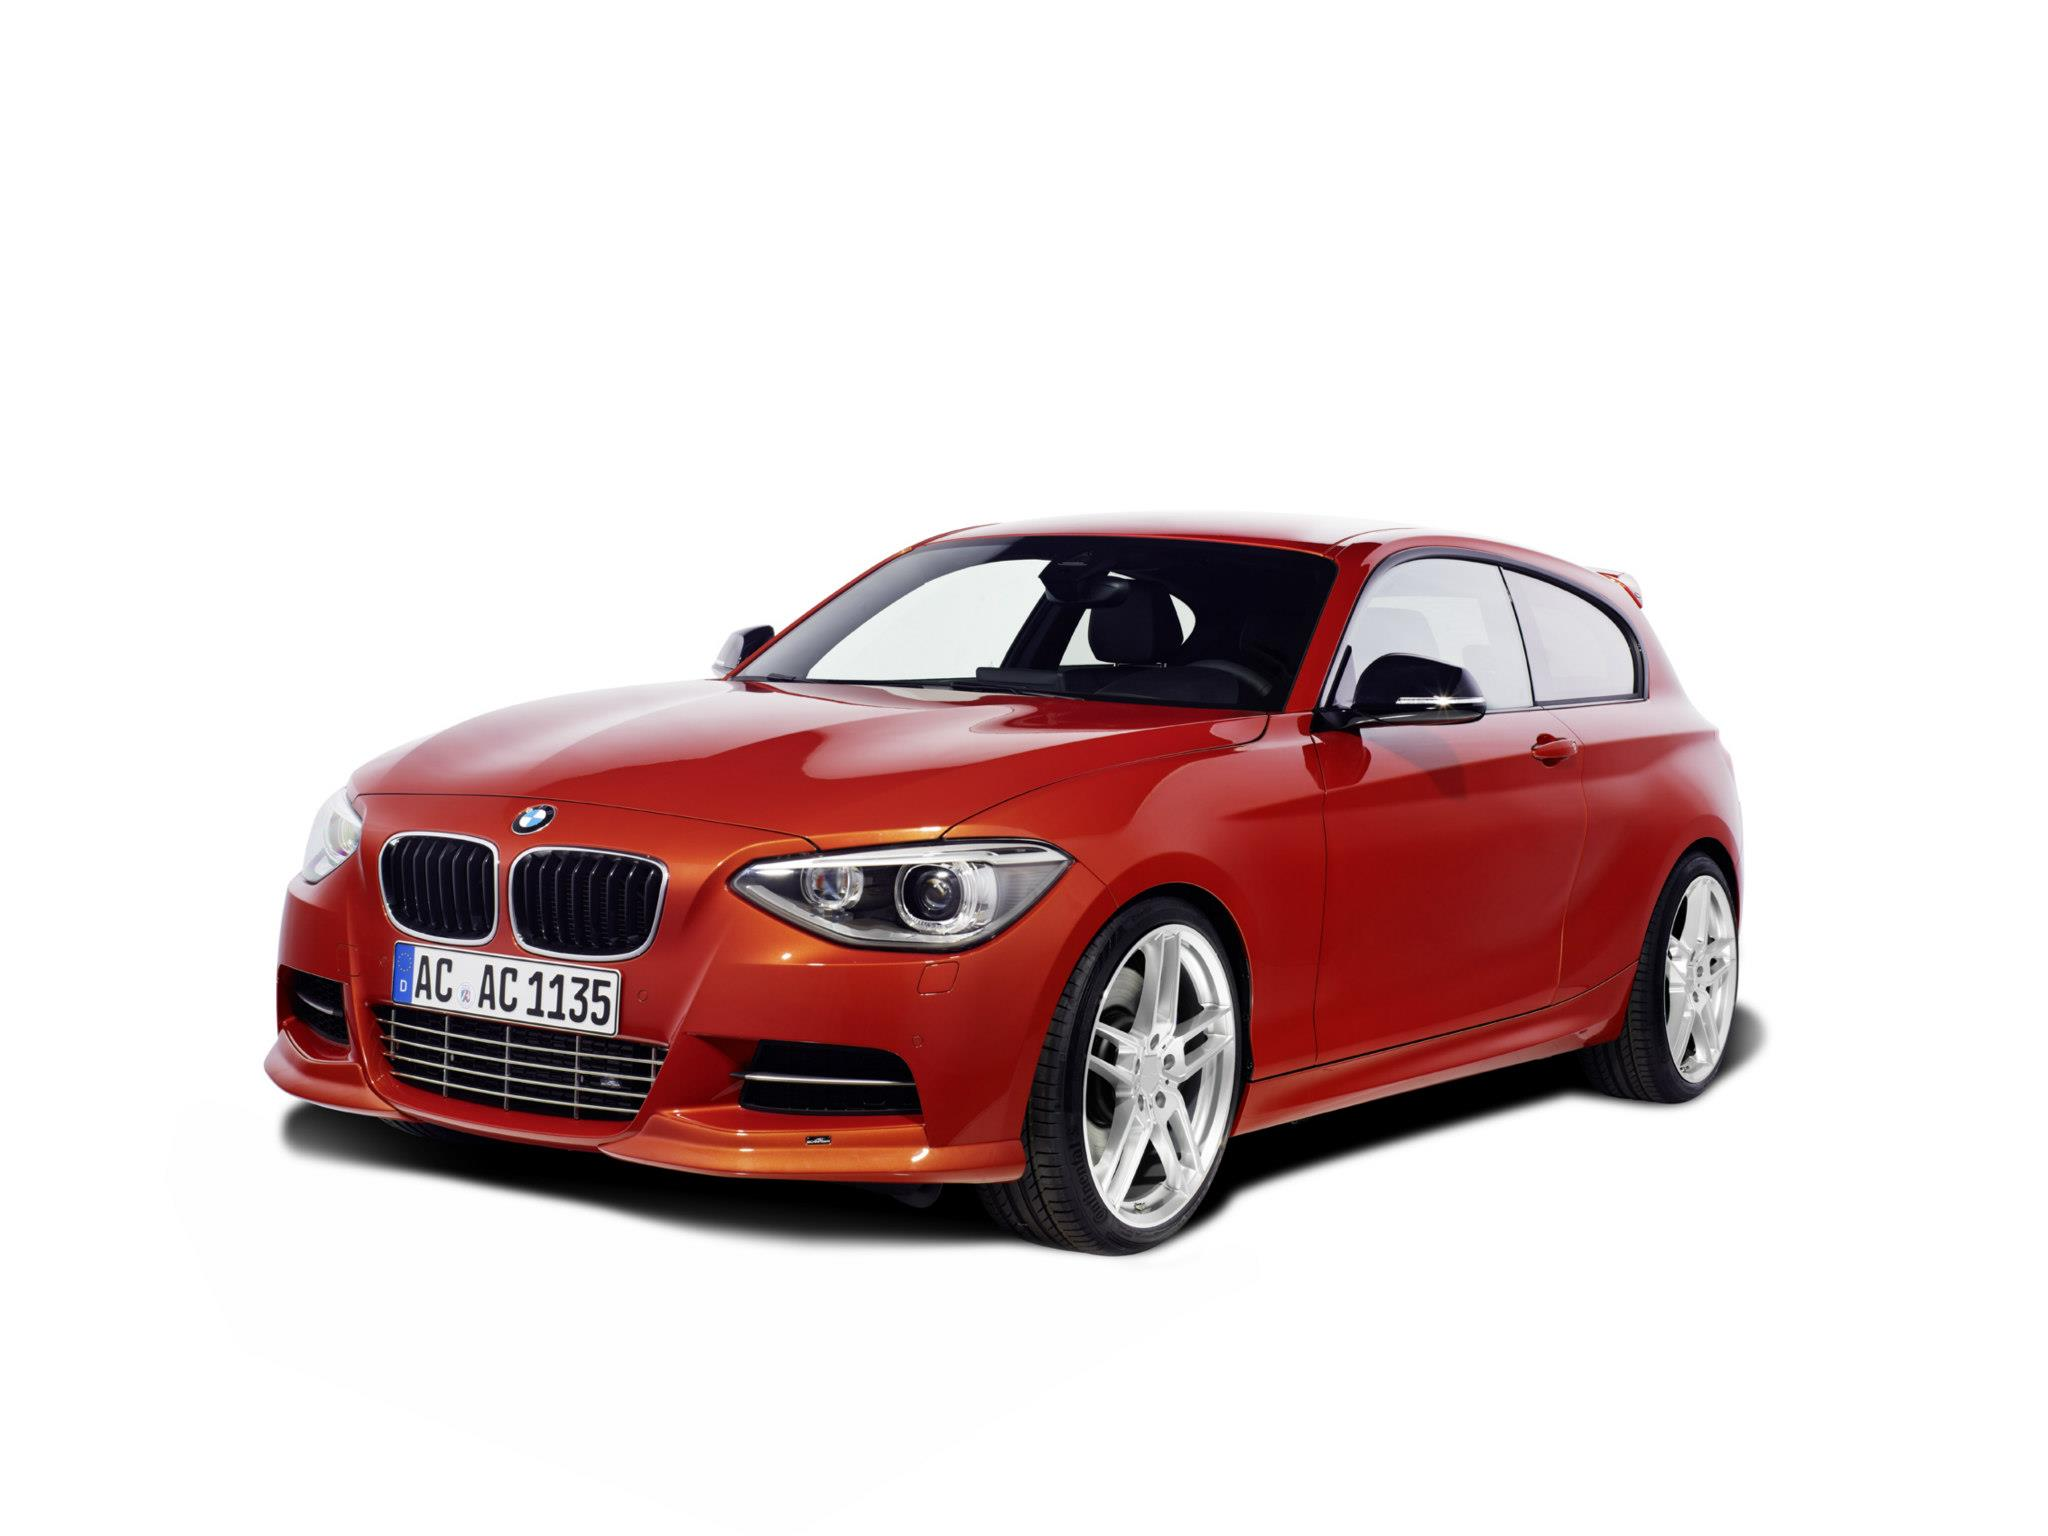 f20 bmw m135i gets revised by ac schnitzer bmw car tuning. Black Bedroom Furniture Sets. Home Design Ideas